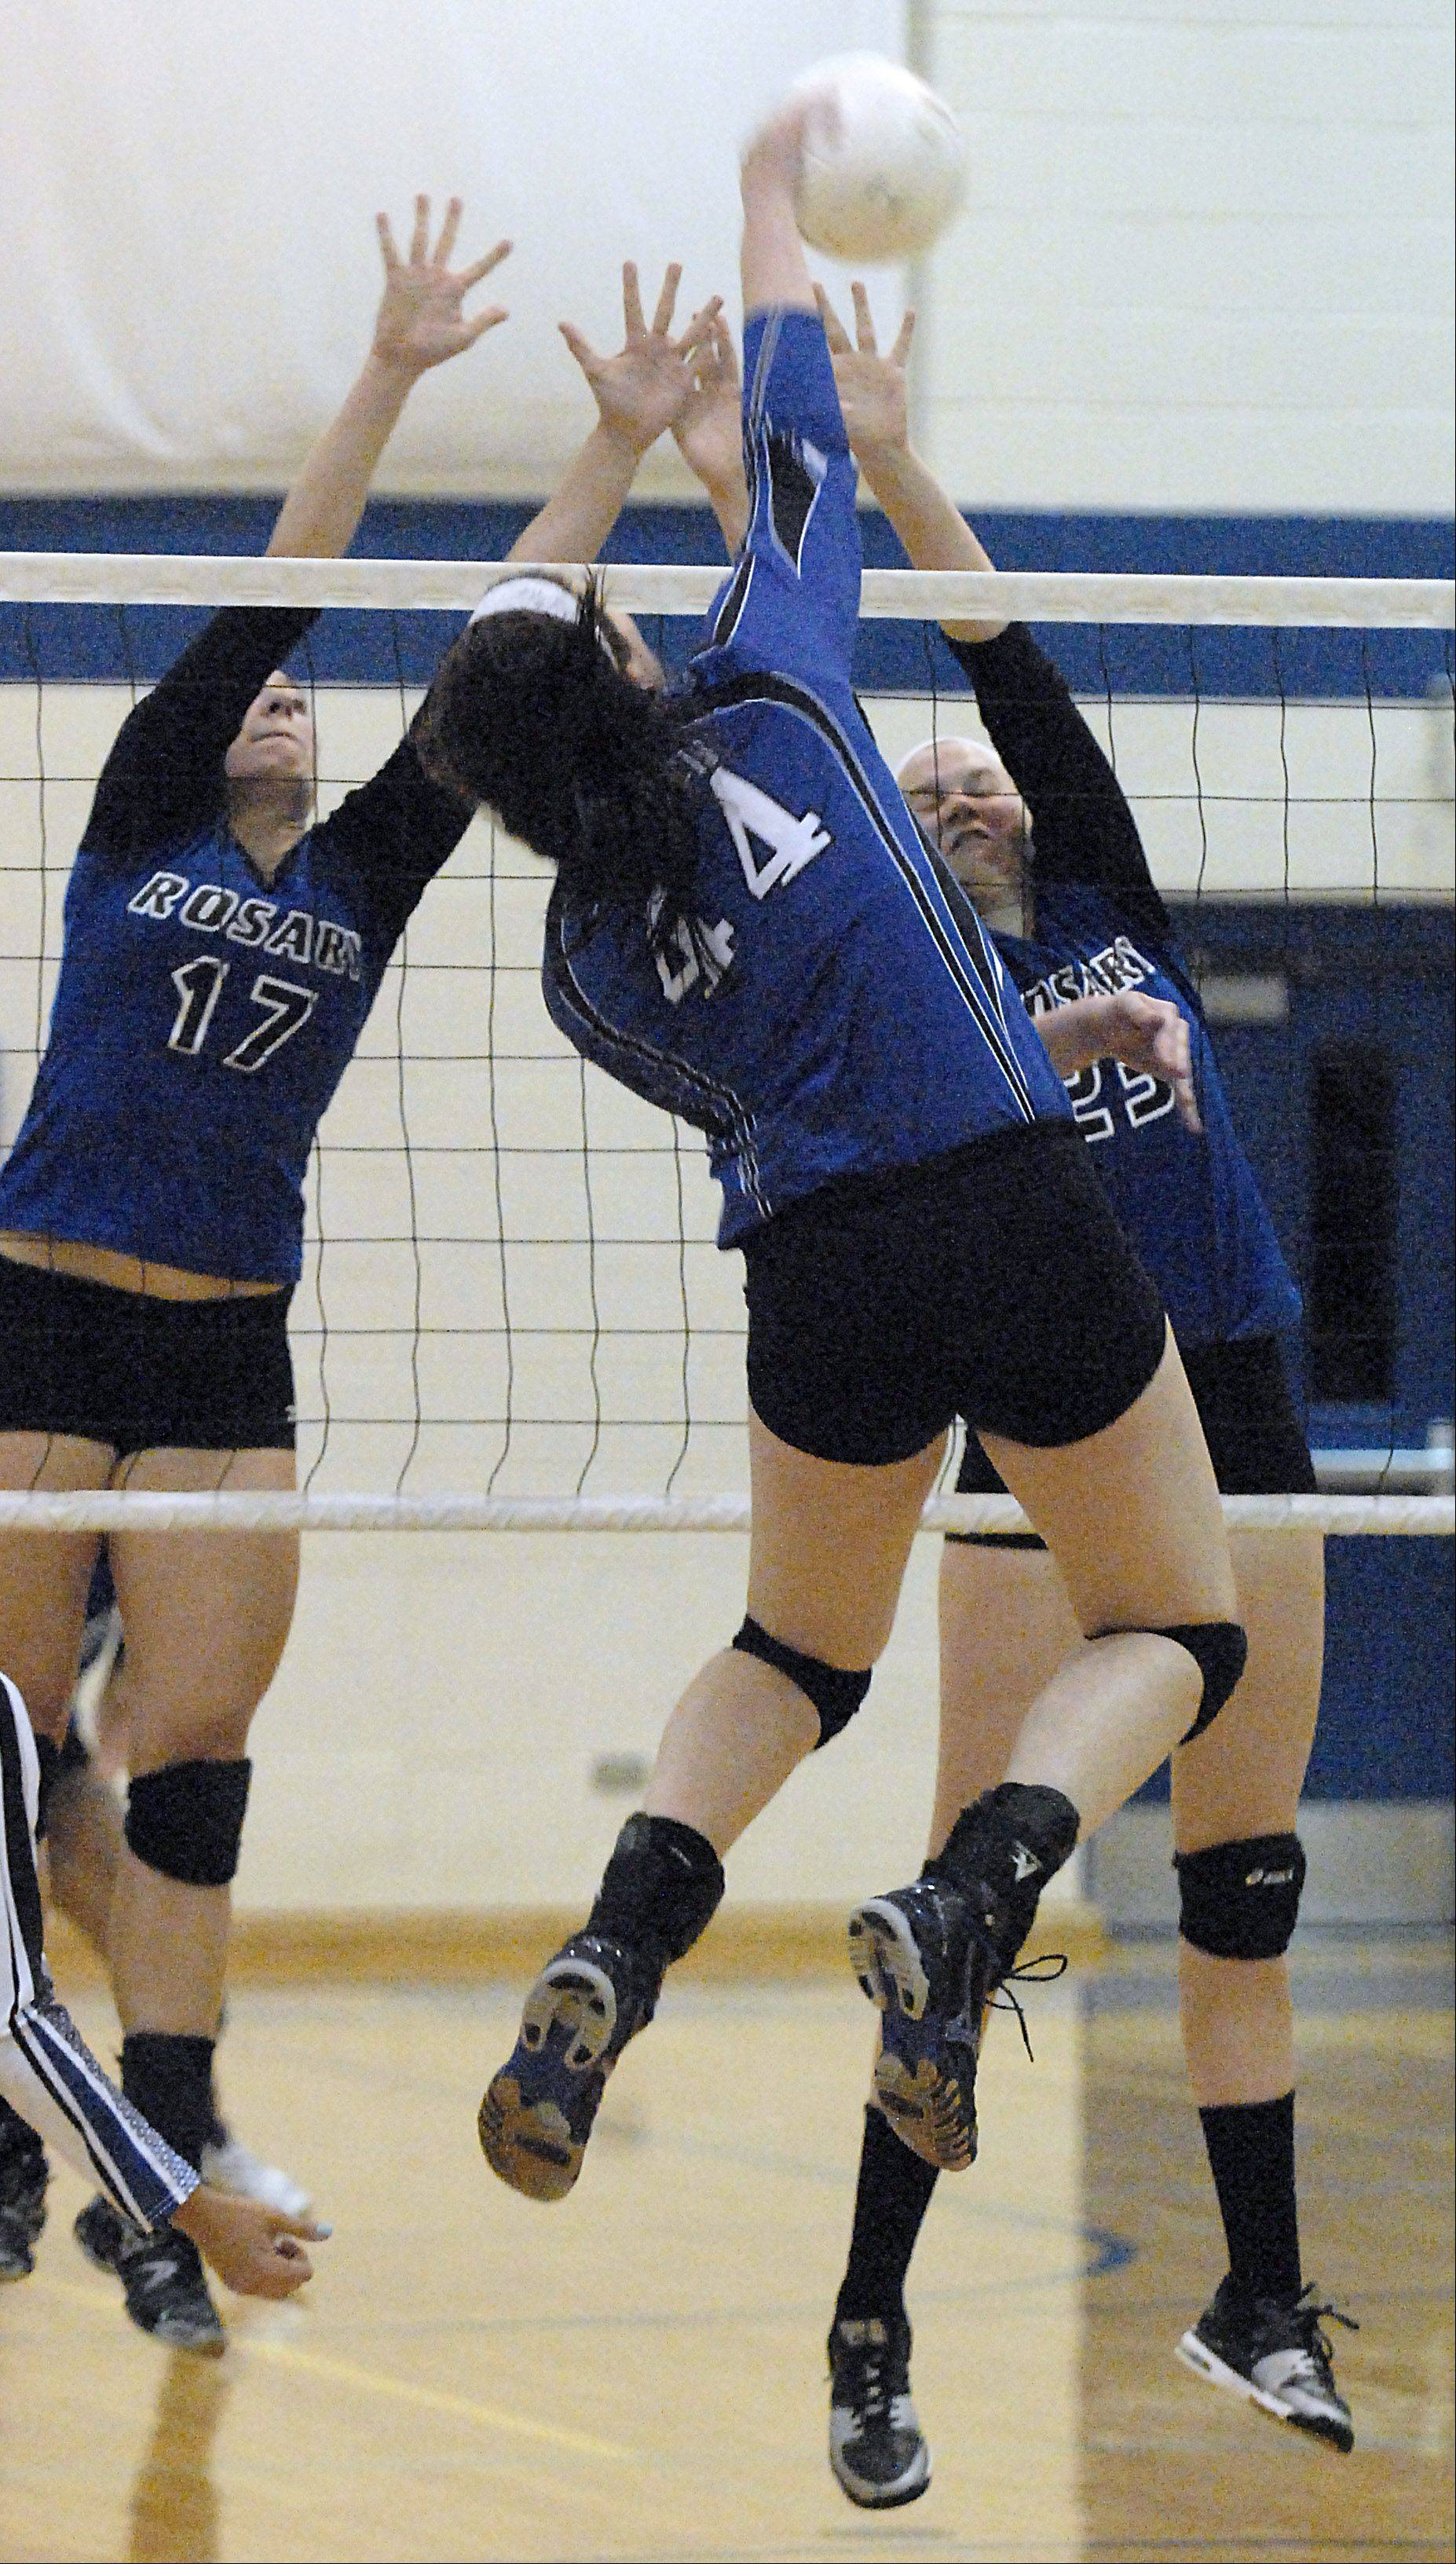 St. Francis' Maddie Haggerty spikes over the net toward Rosary's Kate Stefanski Michaela Ping in the first game on Wednesday, October 3.